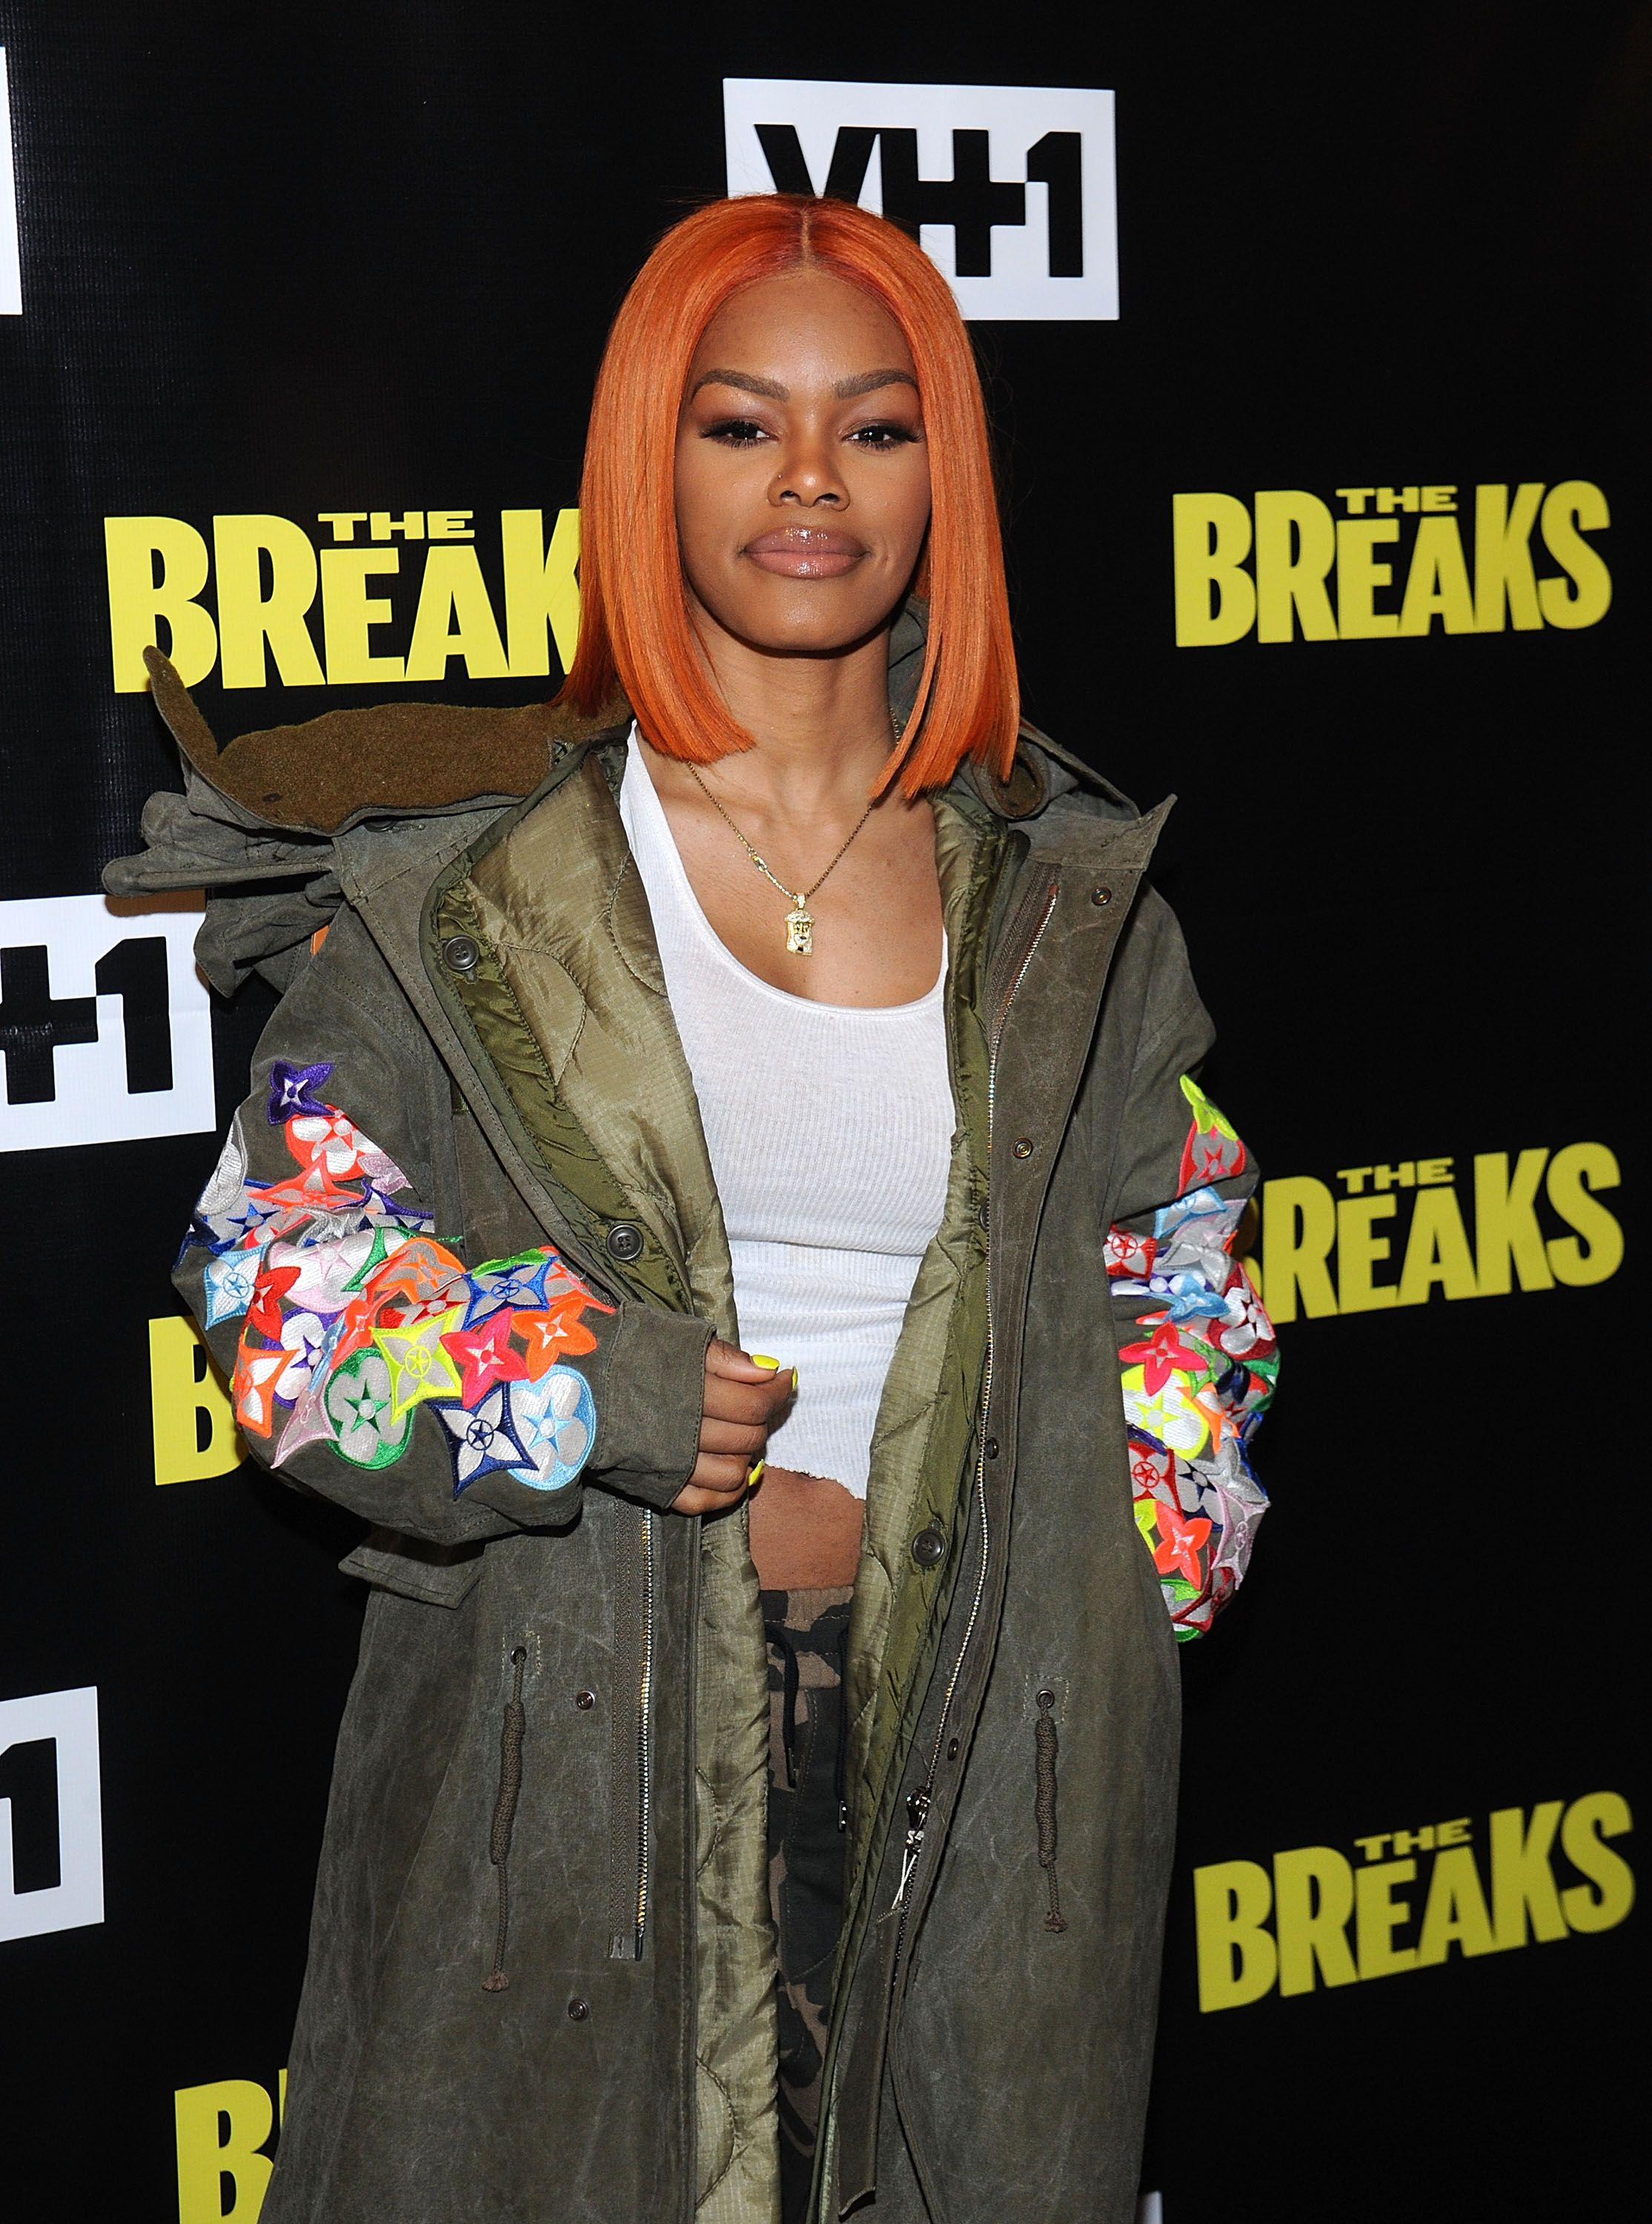 """Teyana Taylor attends """"The Breaks"""" Series Premiere at Roxy Hotel on February 15, 2017 in New York City 